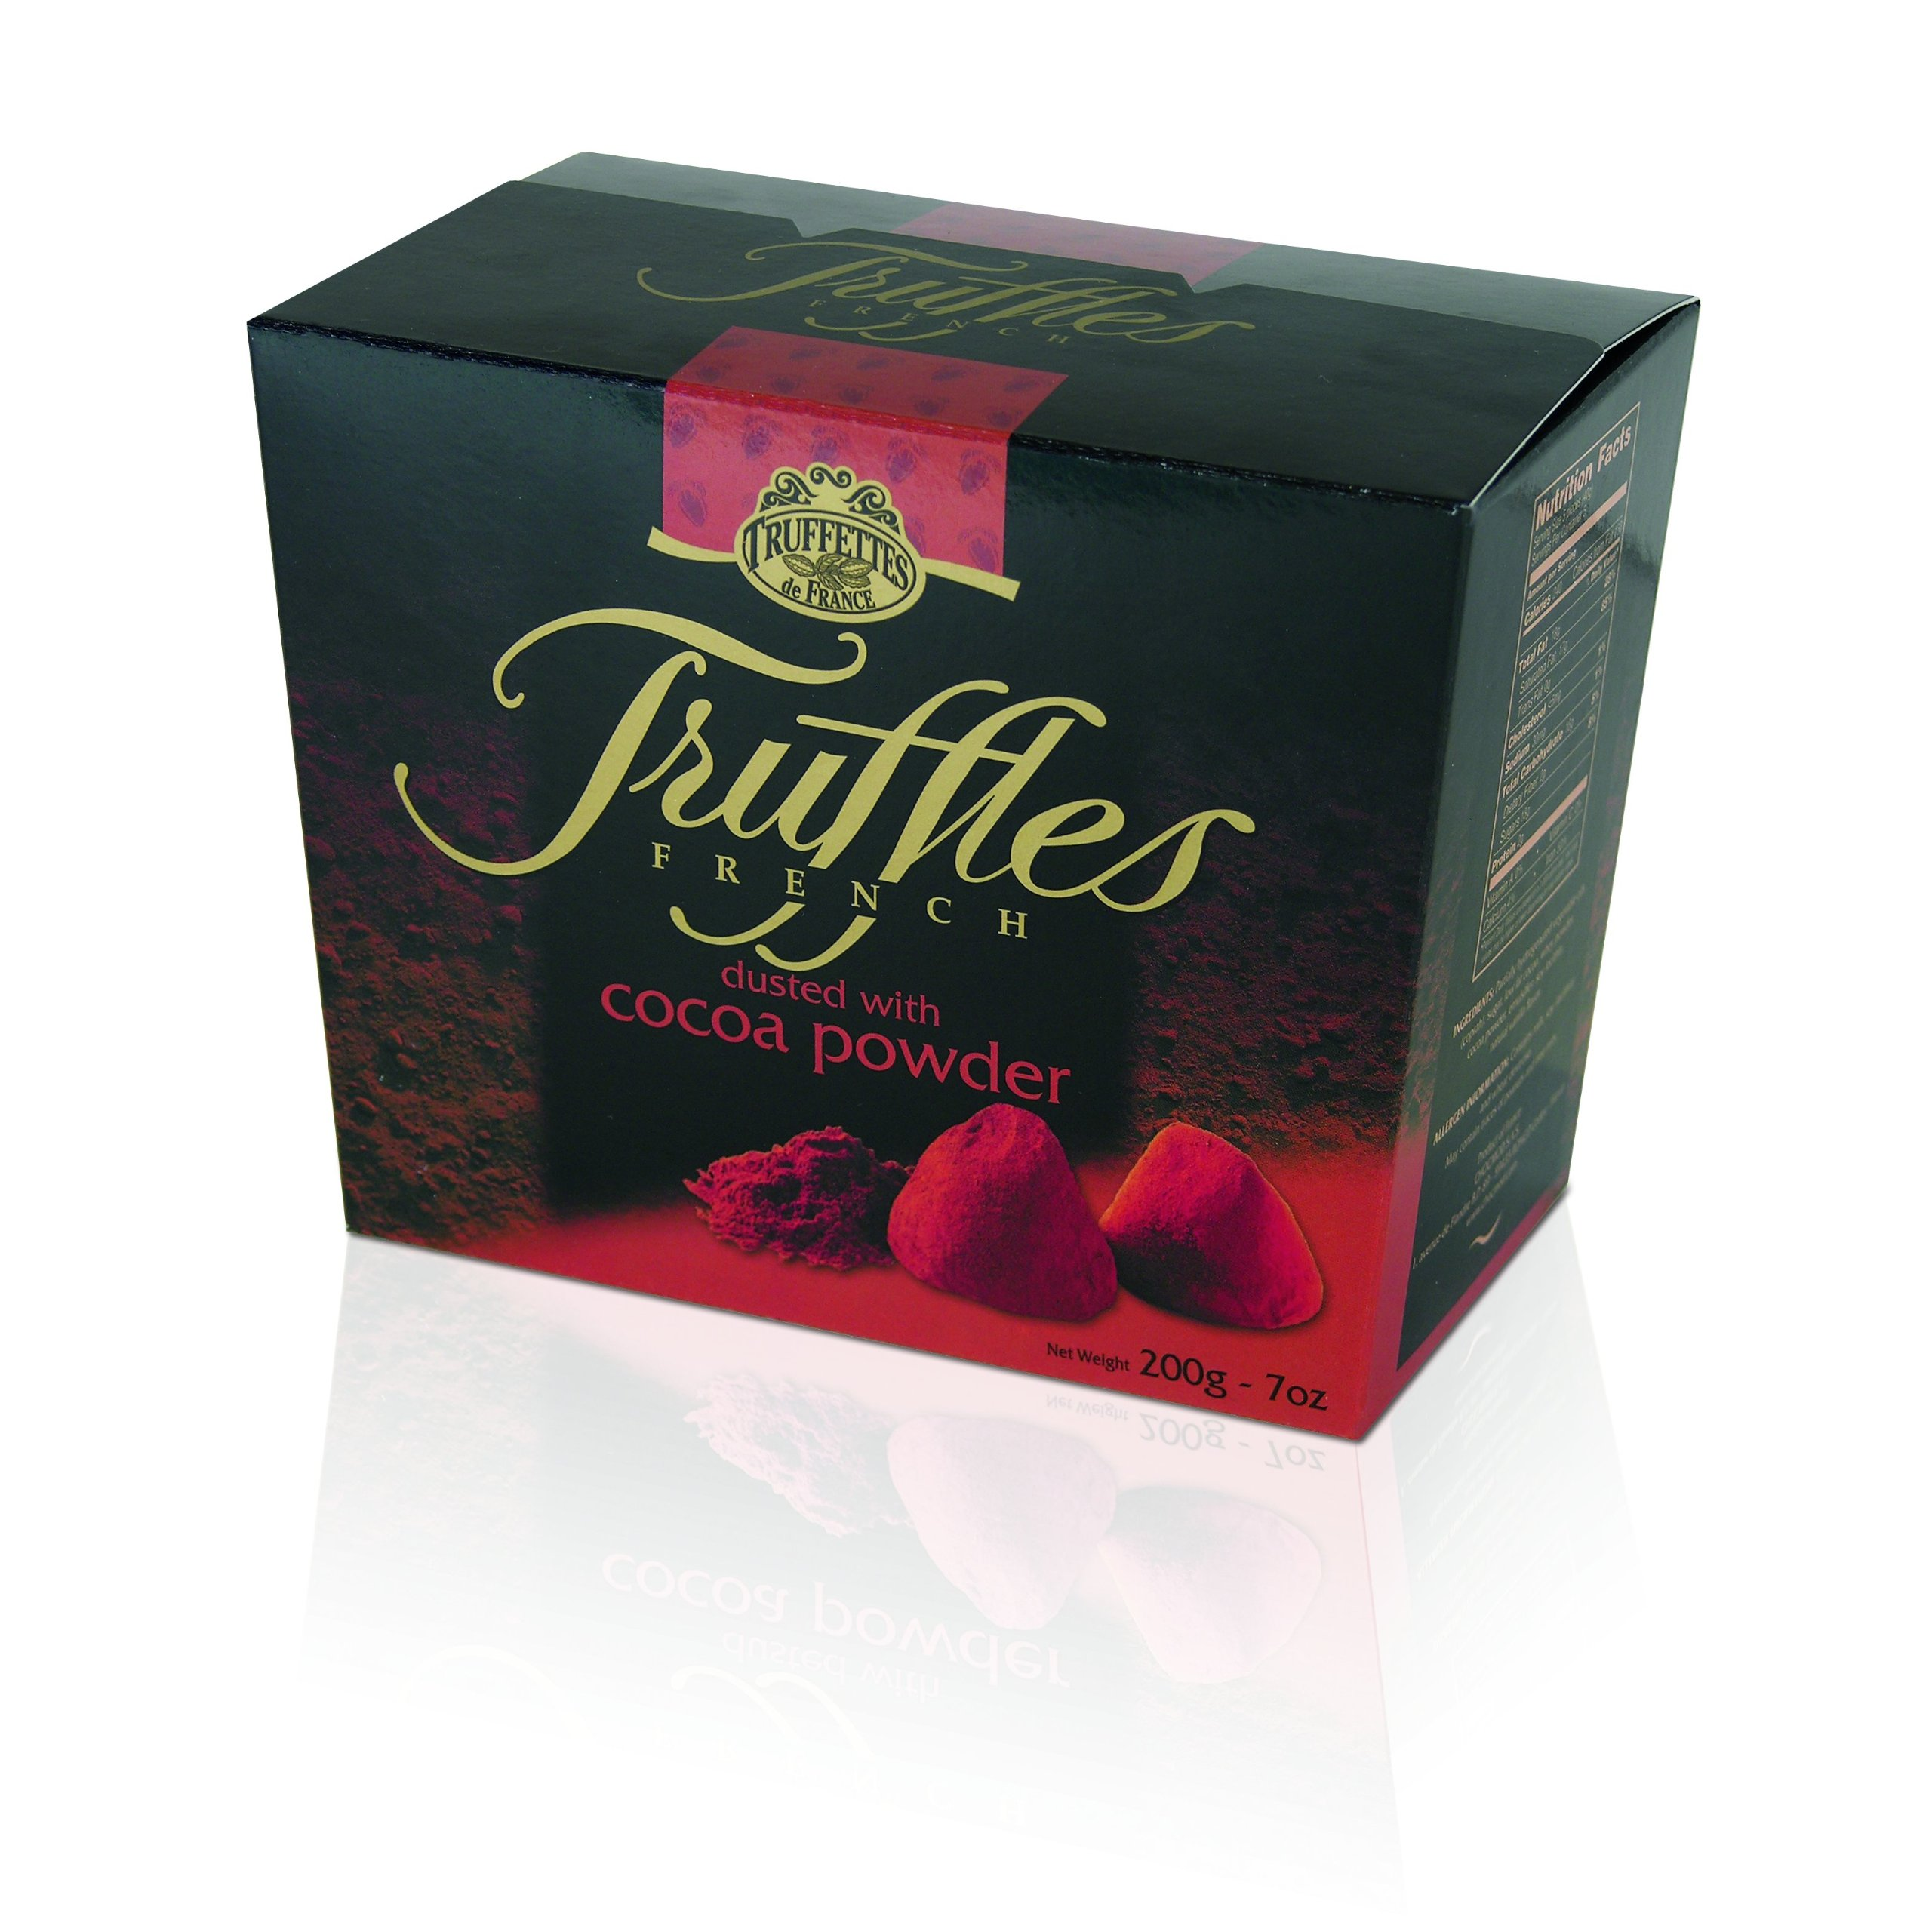 Chocmod Truffettes de France Natural Truffles Dusted with Cocoa Powder, 200 Gram Boxes (Pack of 12)